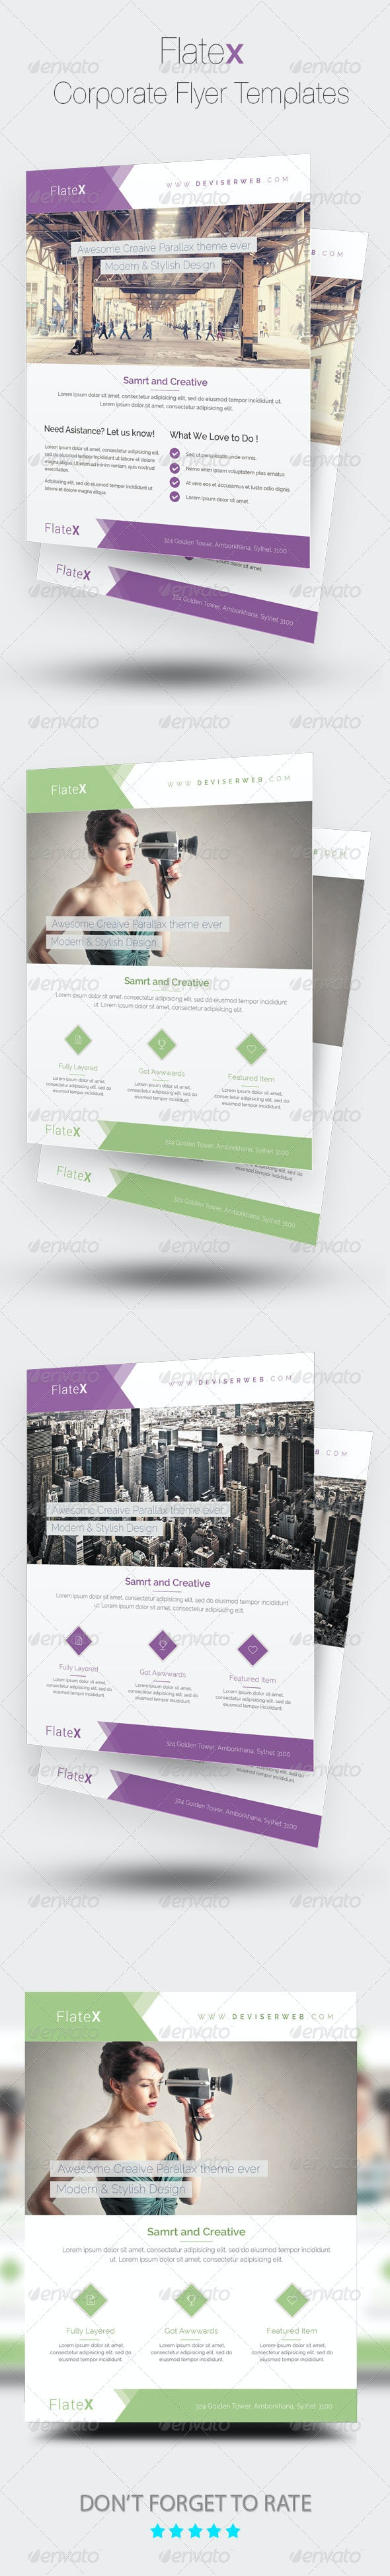 Flatex | Modern Corporate Flyer Templates - Corporate Flyers